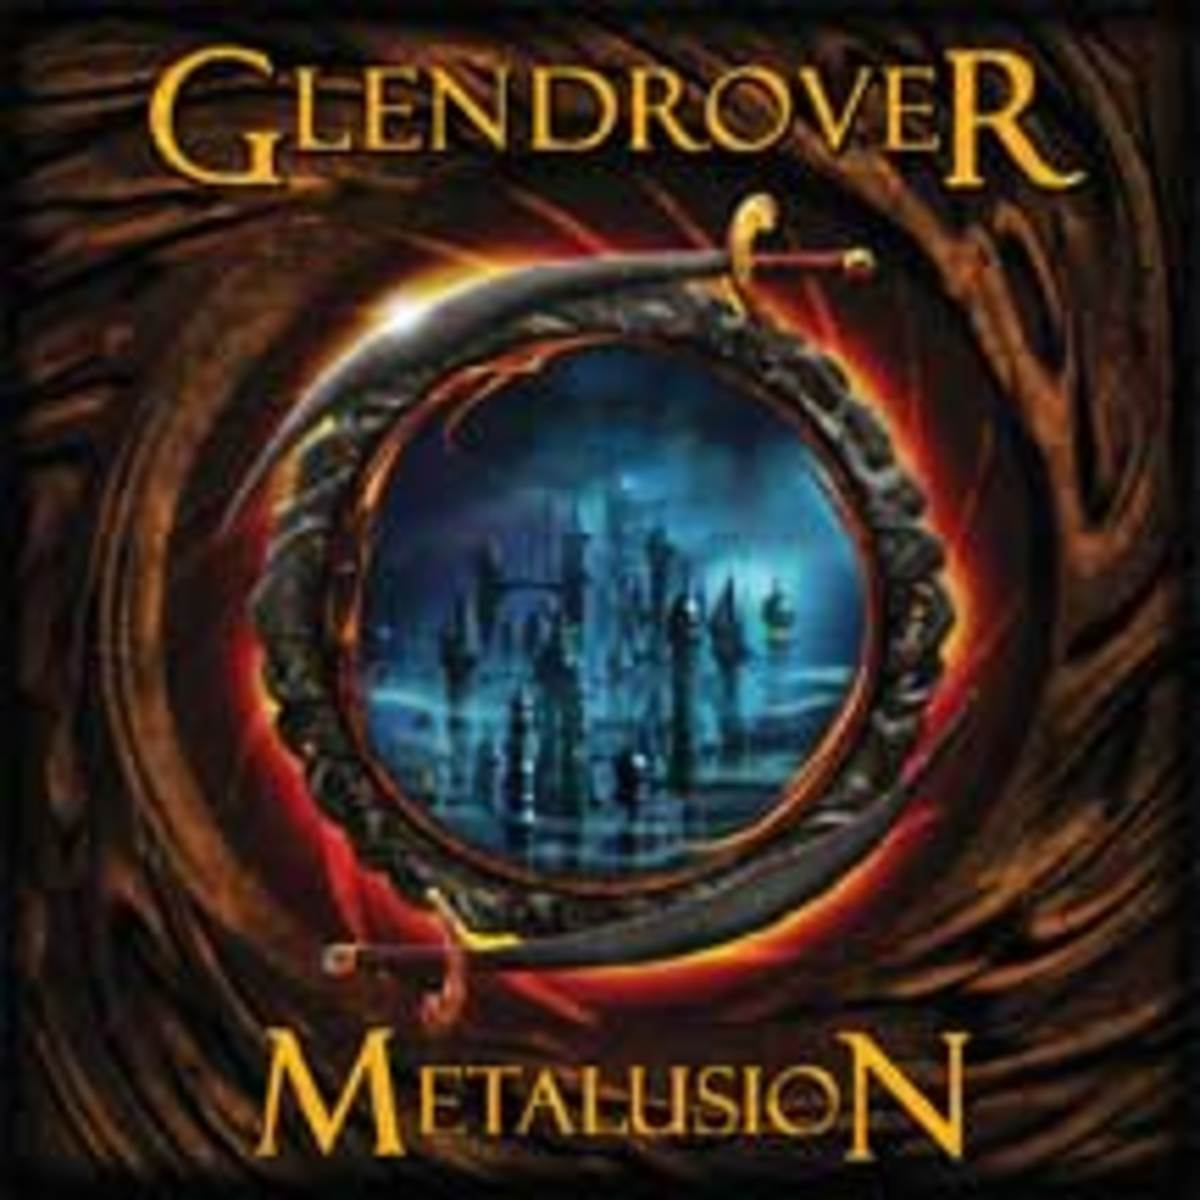 GlenDrover_Metalusion